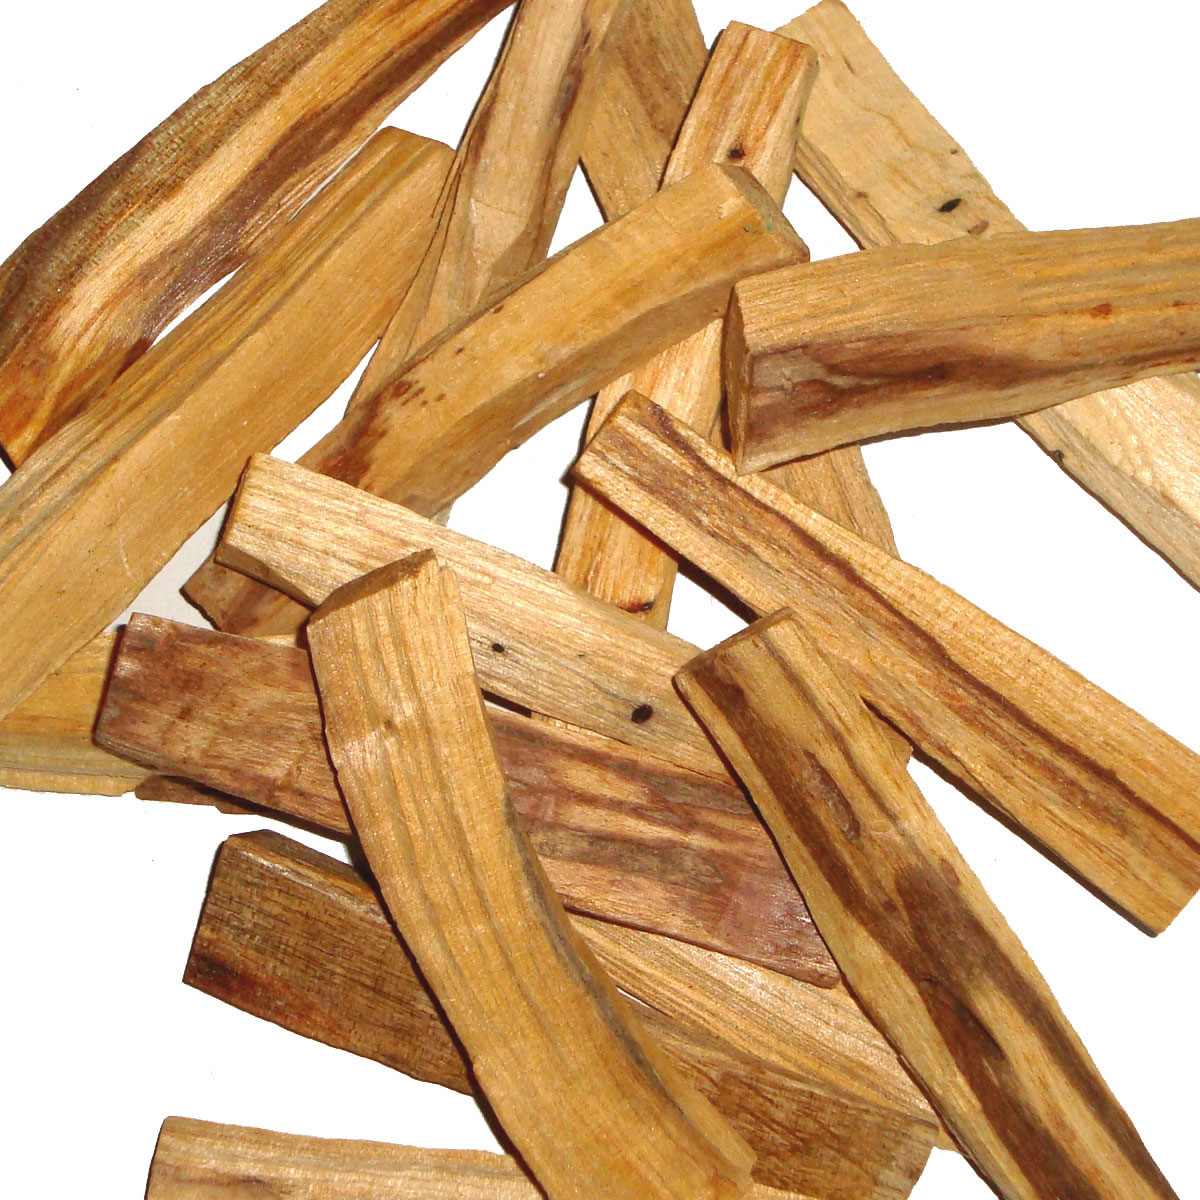 PALO SANTO Incense Sticks THICK STICKS - PERU - BULK - 1Kg